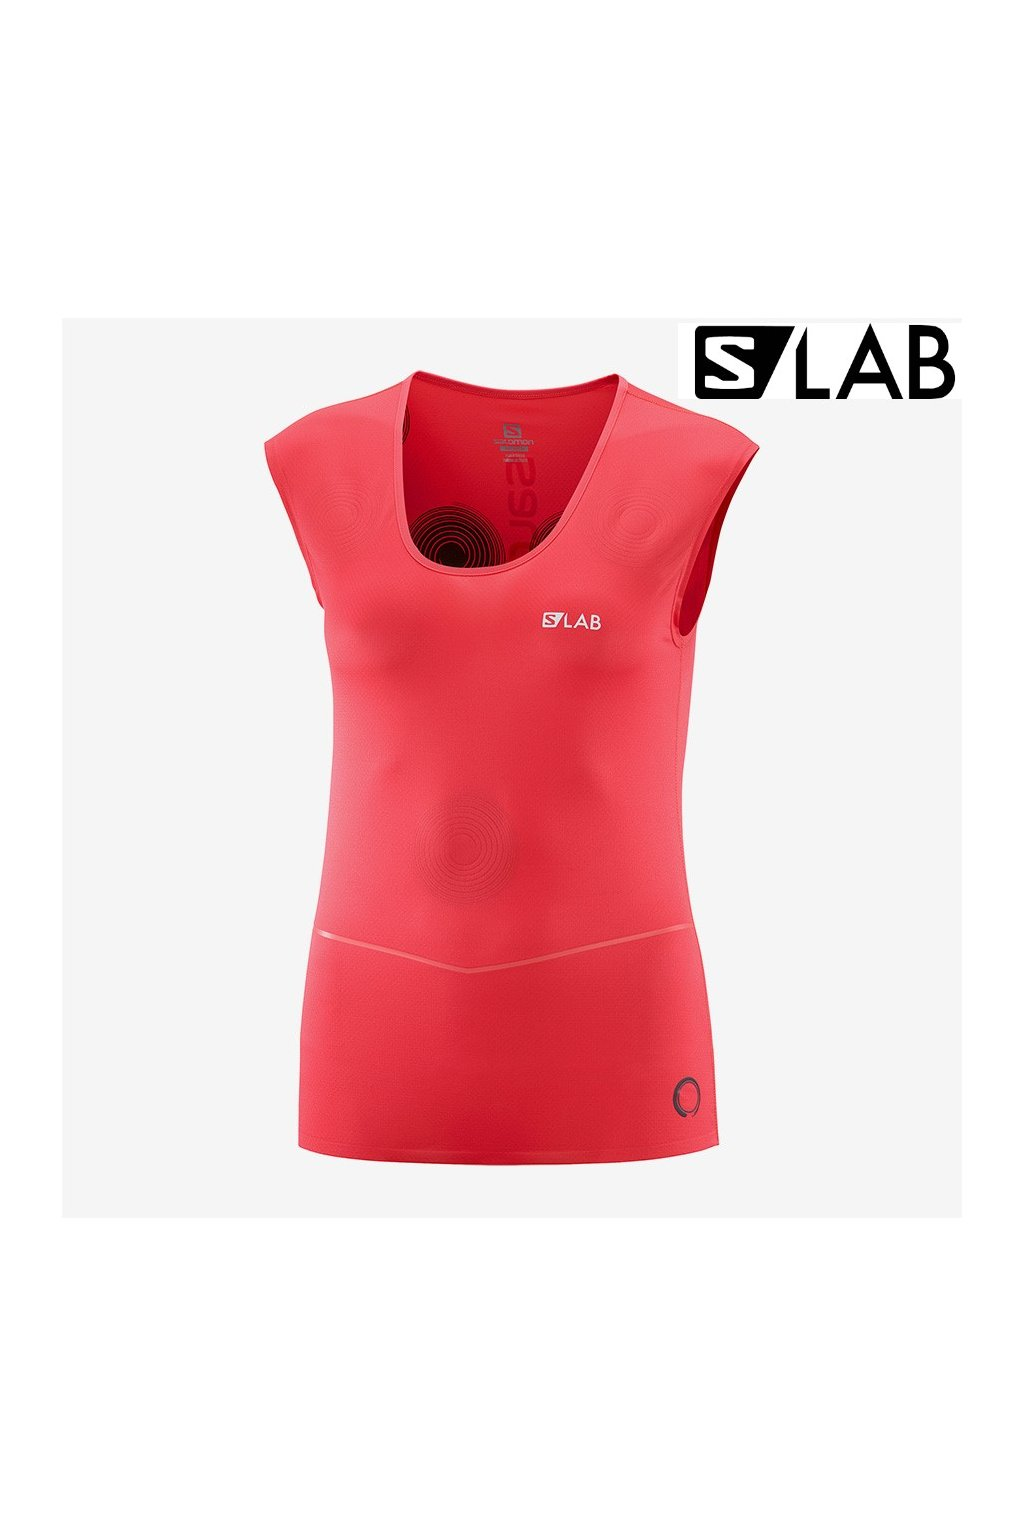 s lab nso sl tee w LC1288100